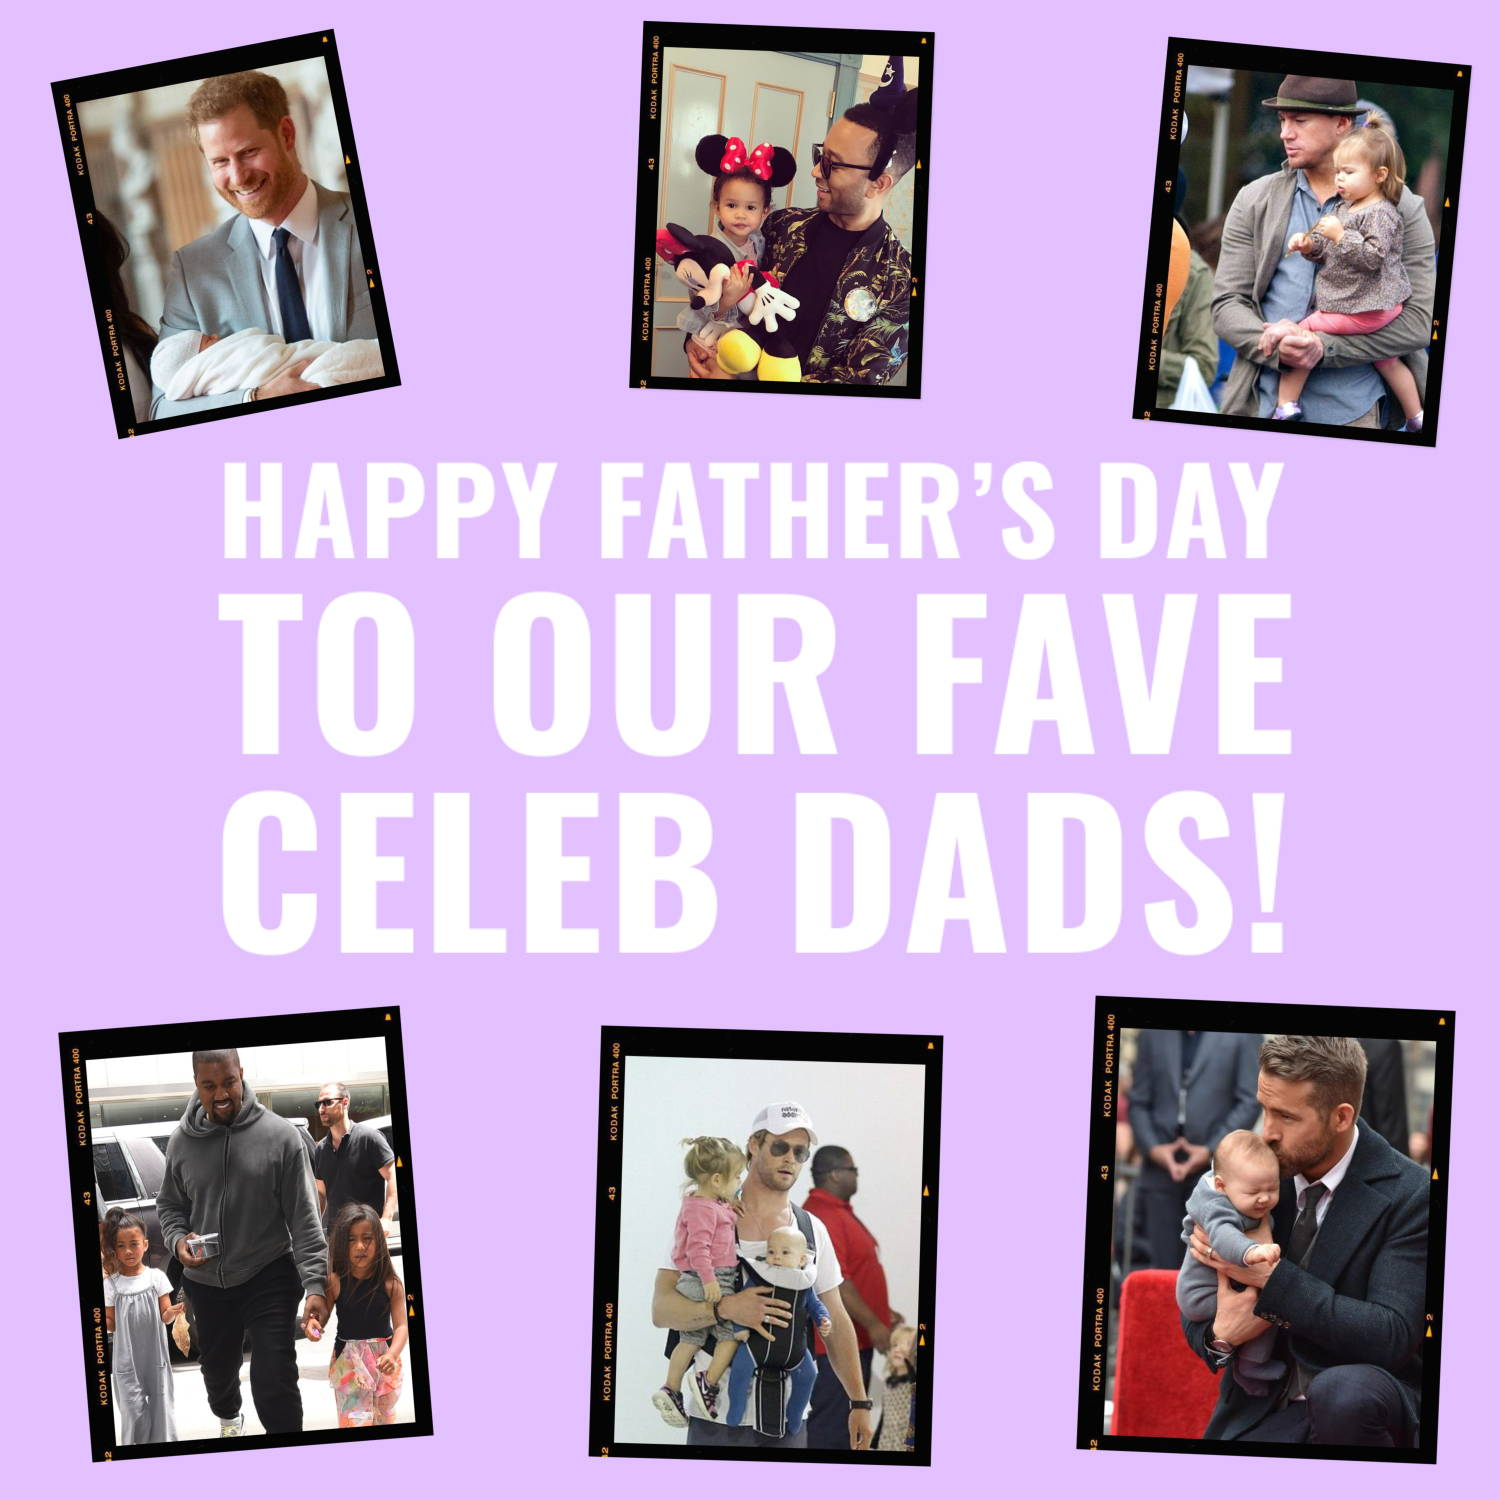 Happy Father's Day to Our Fave Celeb Dads